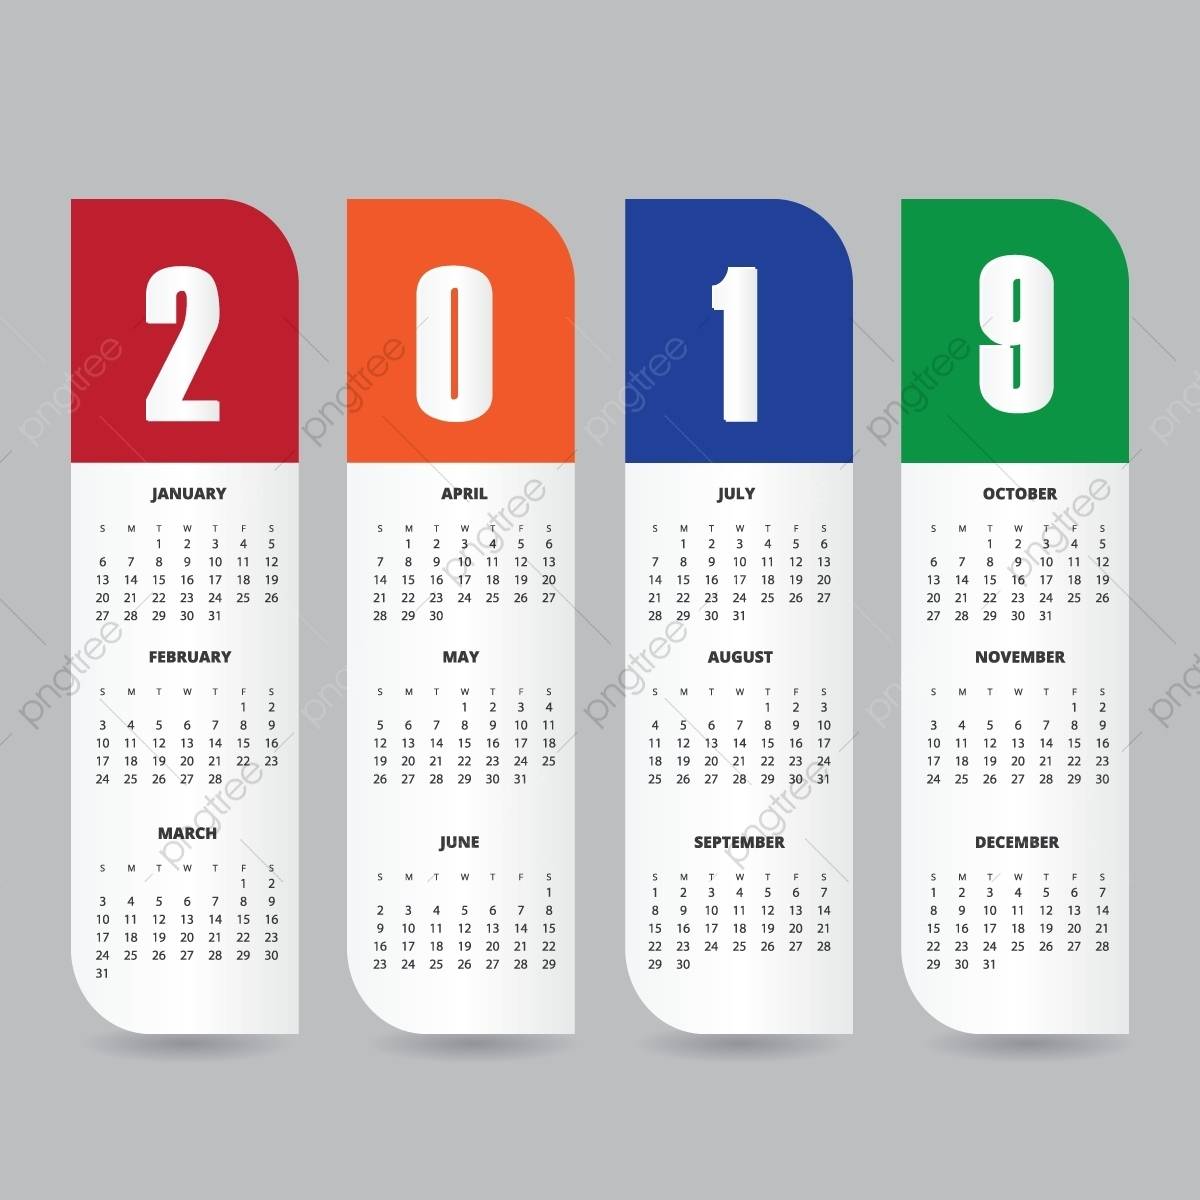 2019 Calendar Design Template, New, Planner, Addate Png And Free Calendar Background Templates